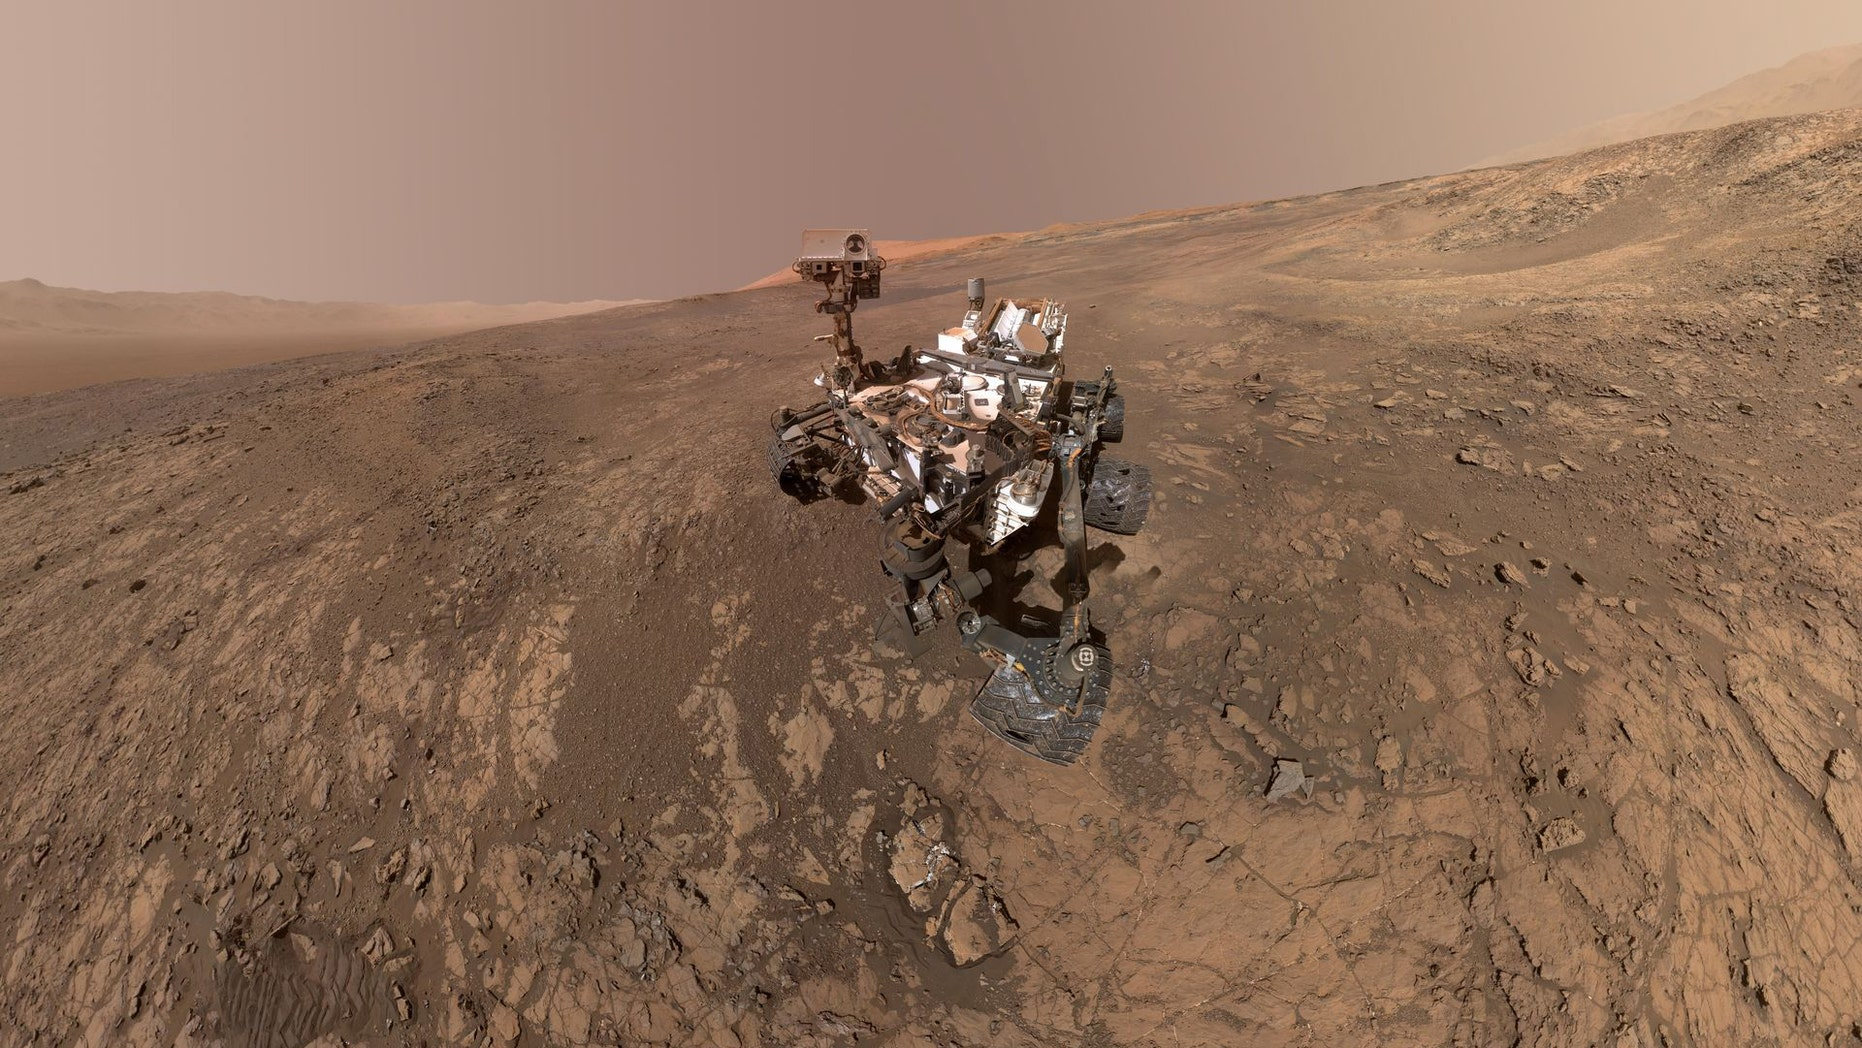 This self-portrait of NASA's Curiosity Mars rover shows the vehicle on Vera Rubin Ridge in Gale crater on Mars. (Credit: NASA/JPL-Caltech/MSSS)